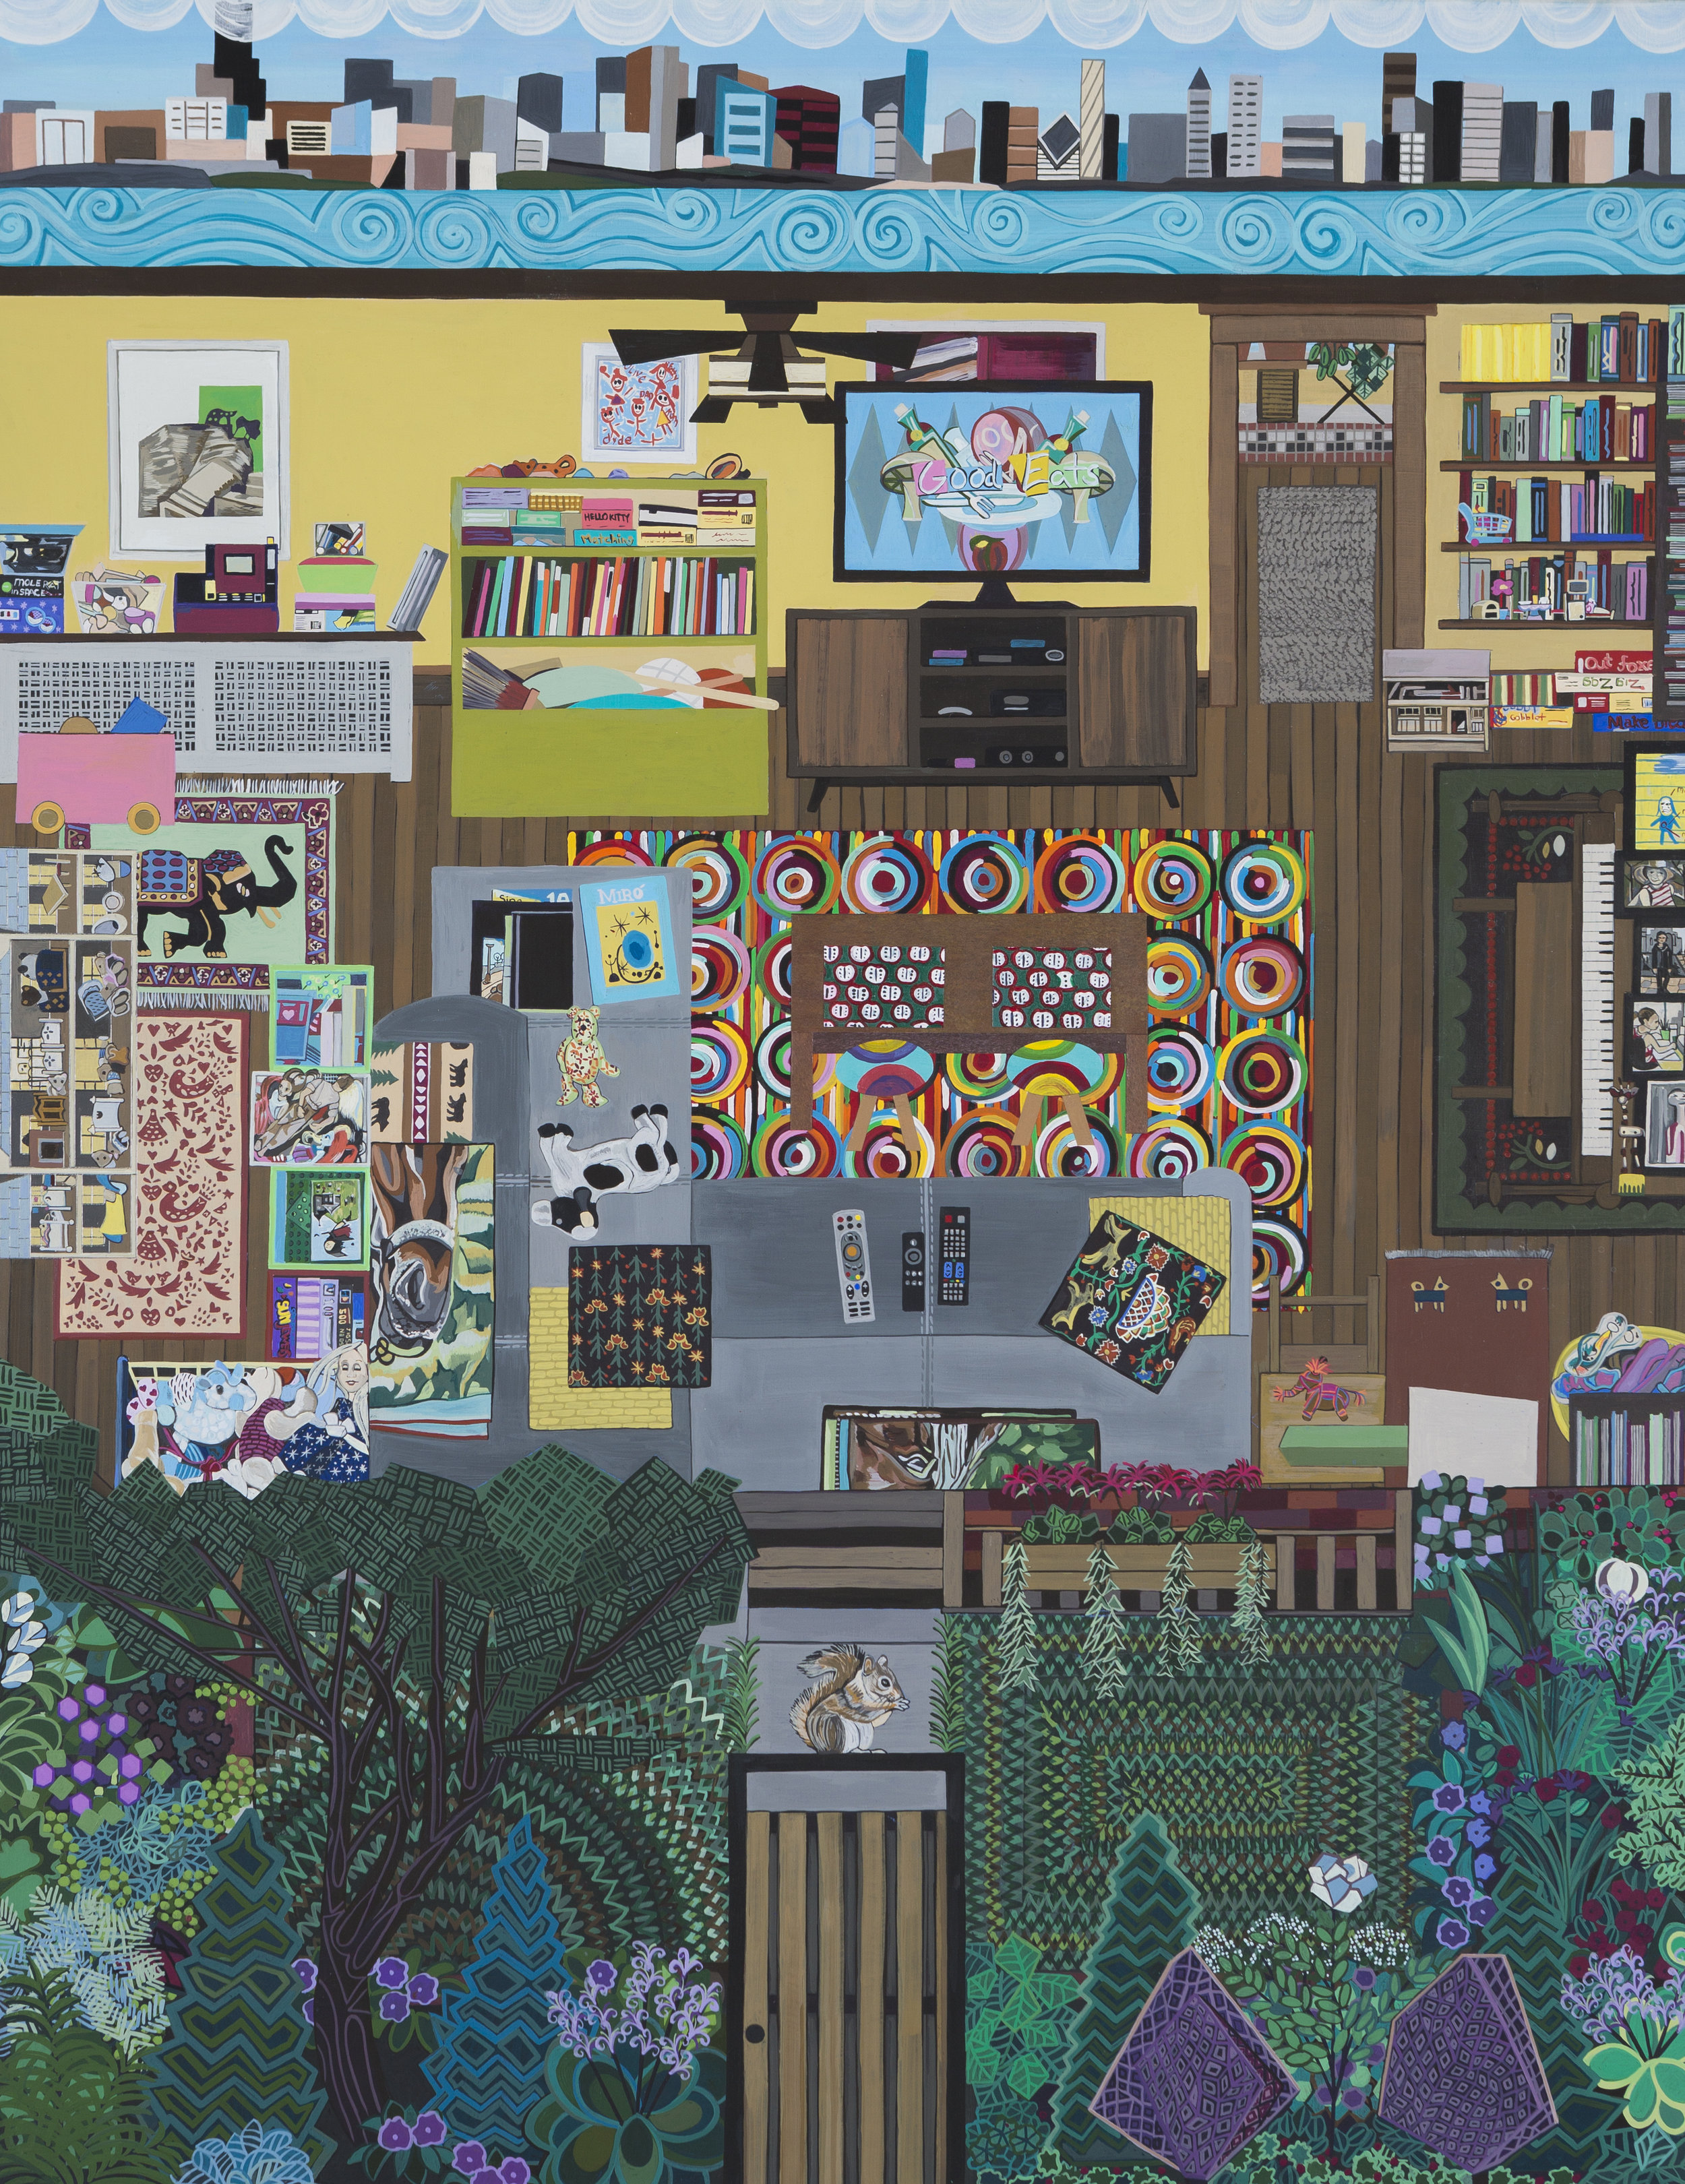 Ann Toebbe,   Family Room (Artist) , 2017  gouache and pencil on panel, 28h x 22w in